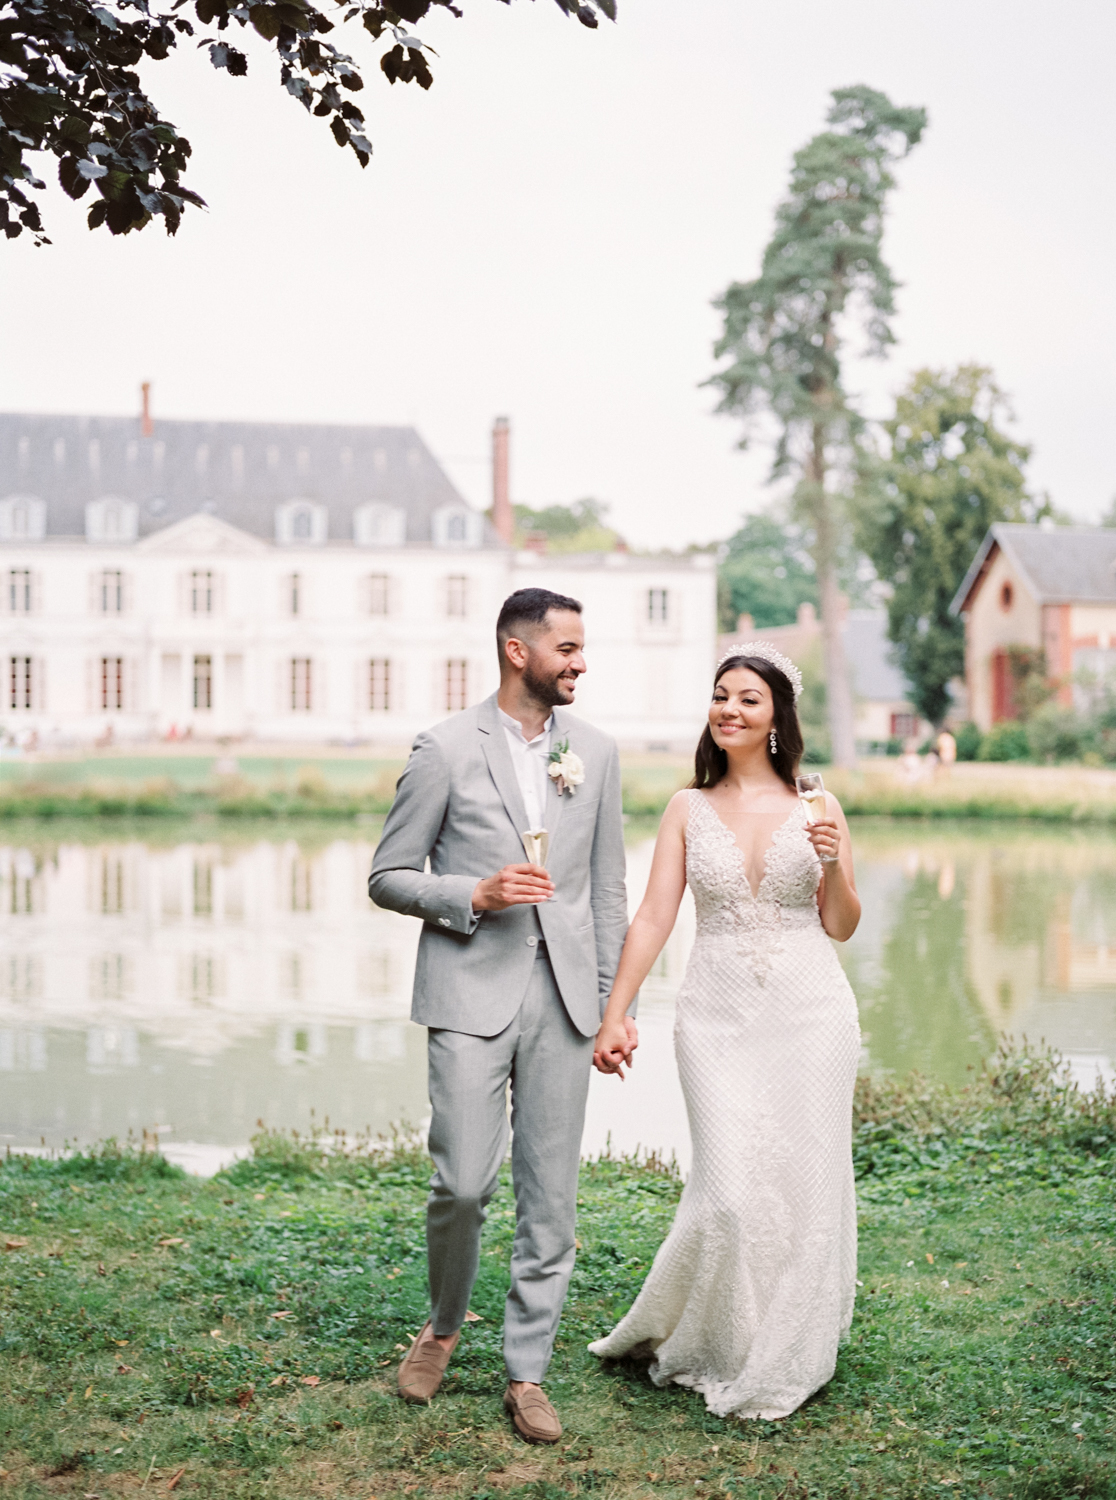 chateau-barthelemy-wedding-juliarapp-23.